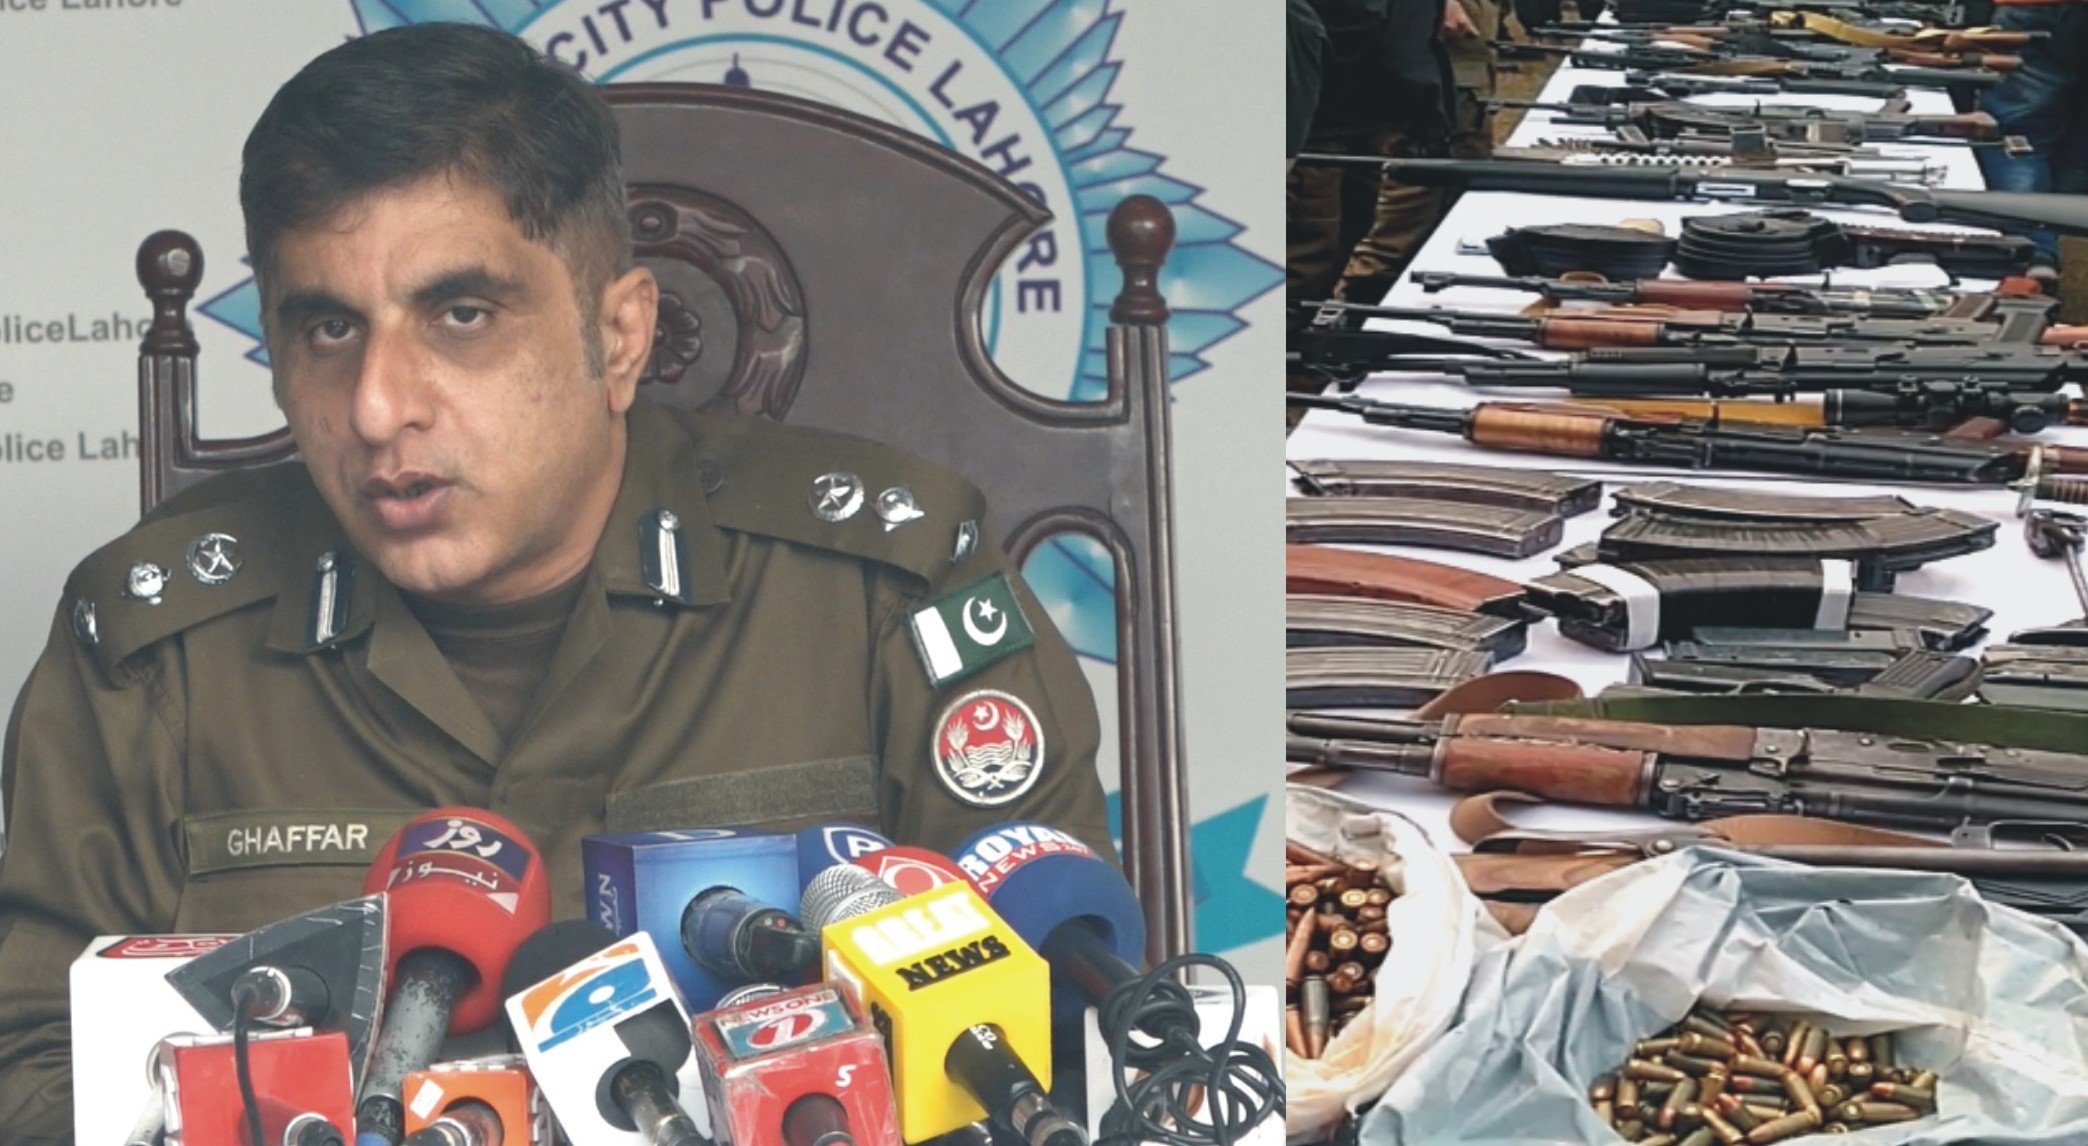 Lahore police-weapons